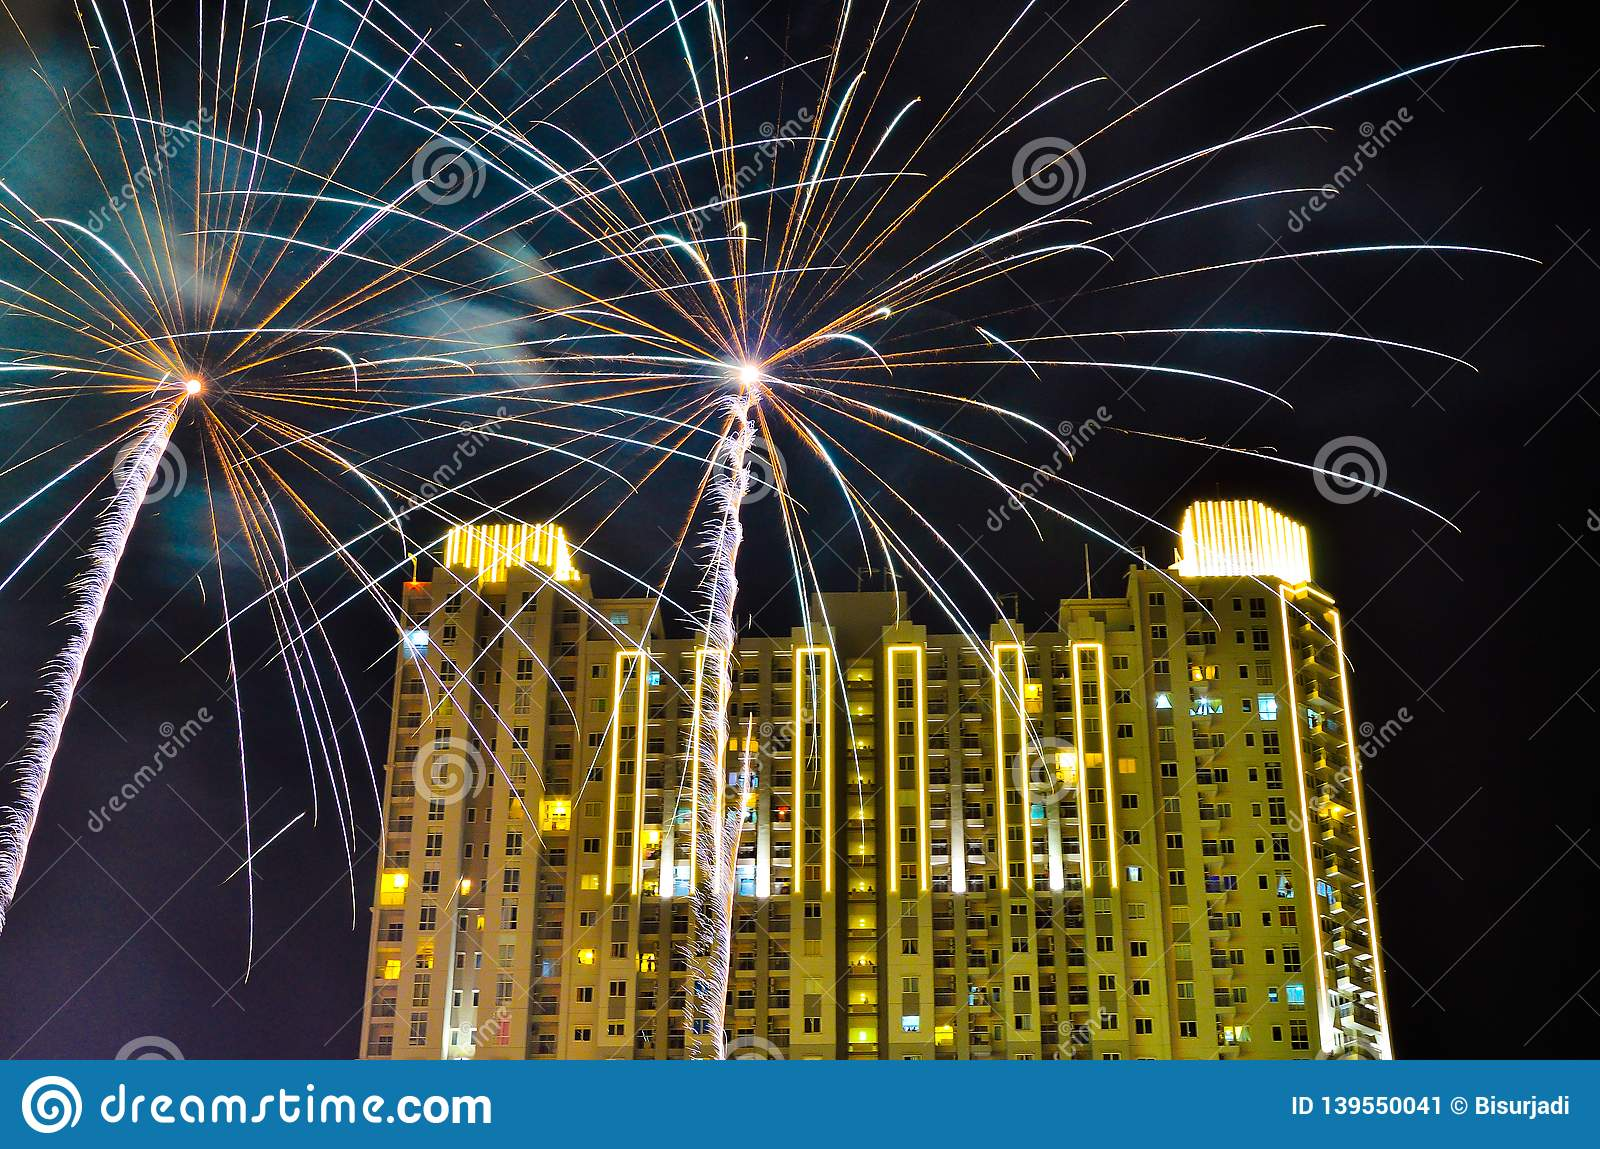 Fireworks celebration in downtown city center with tall apartment and office buildings